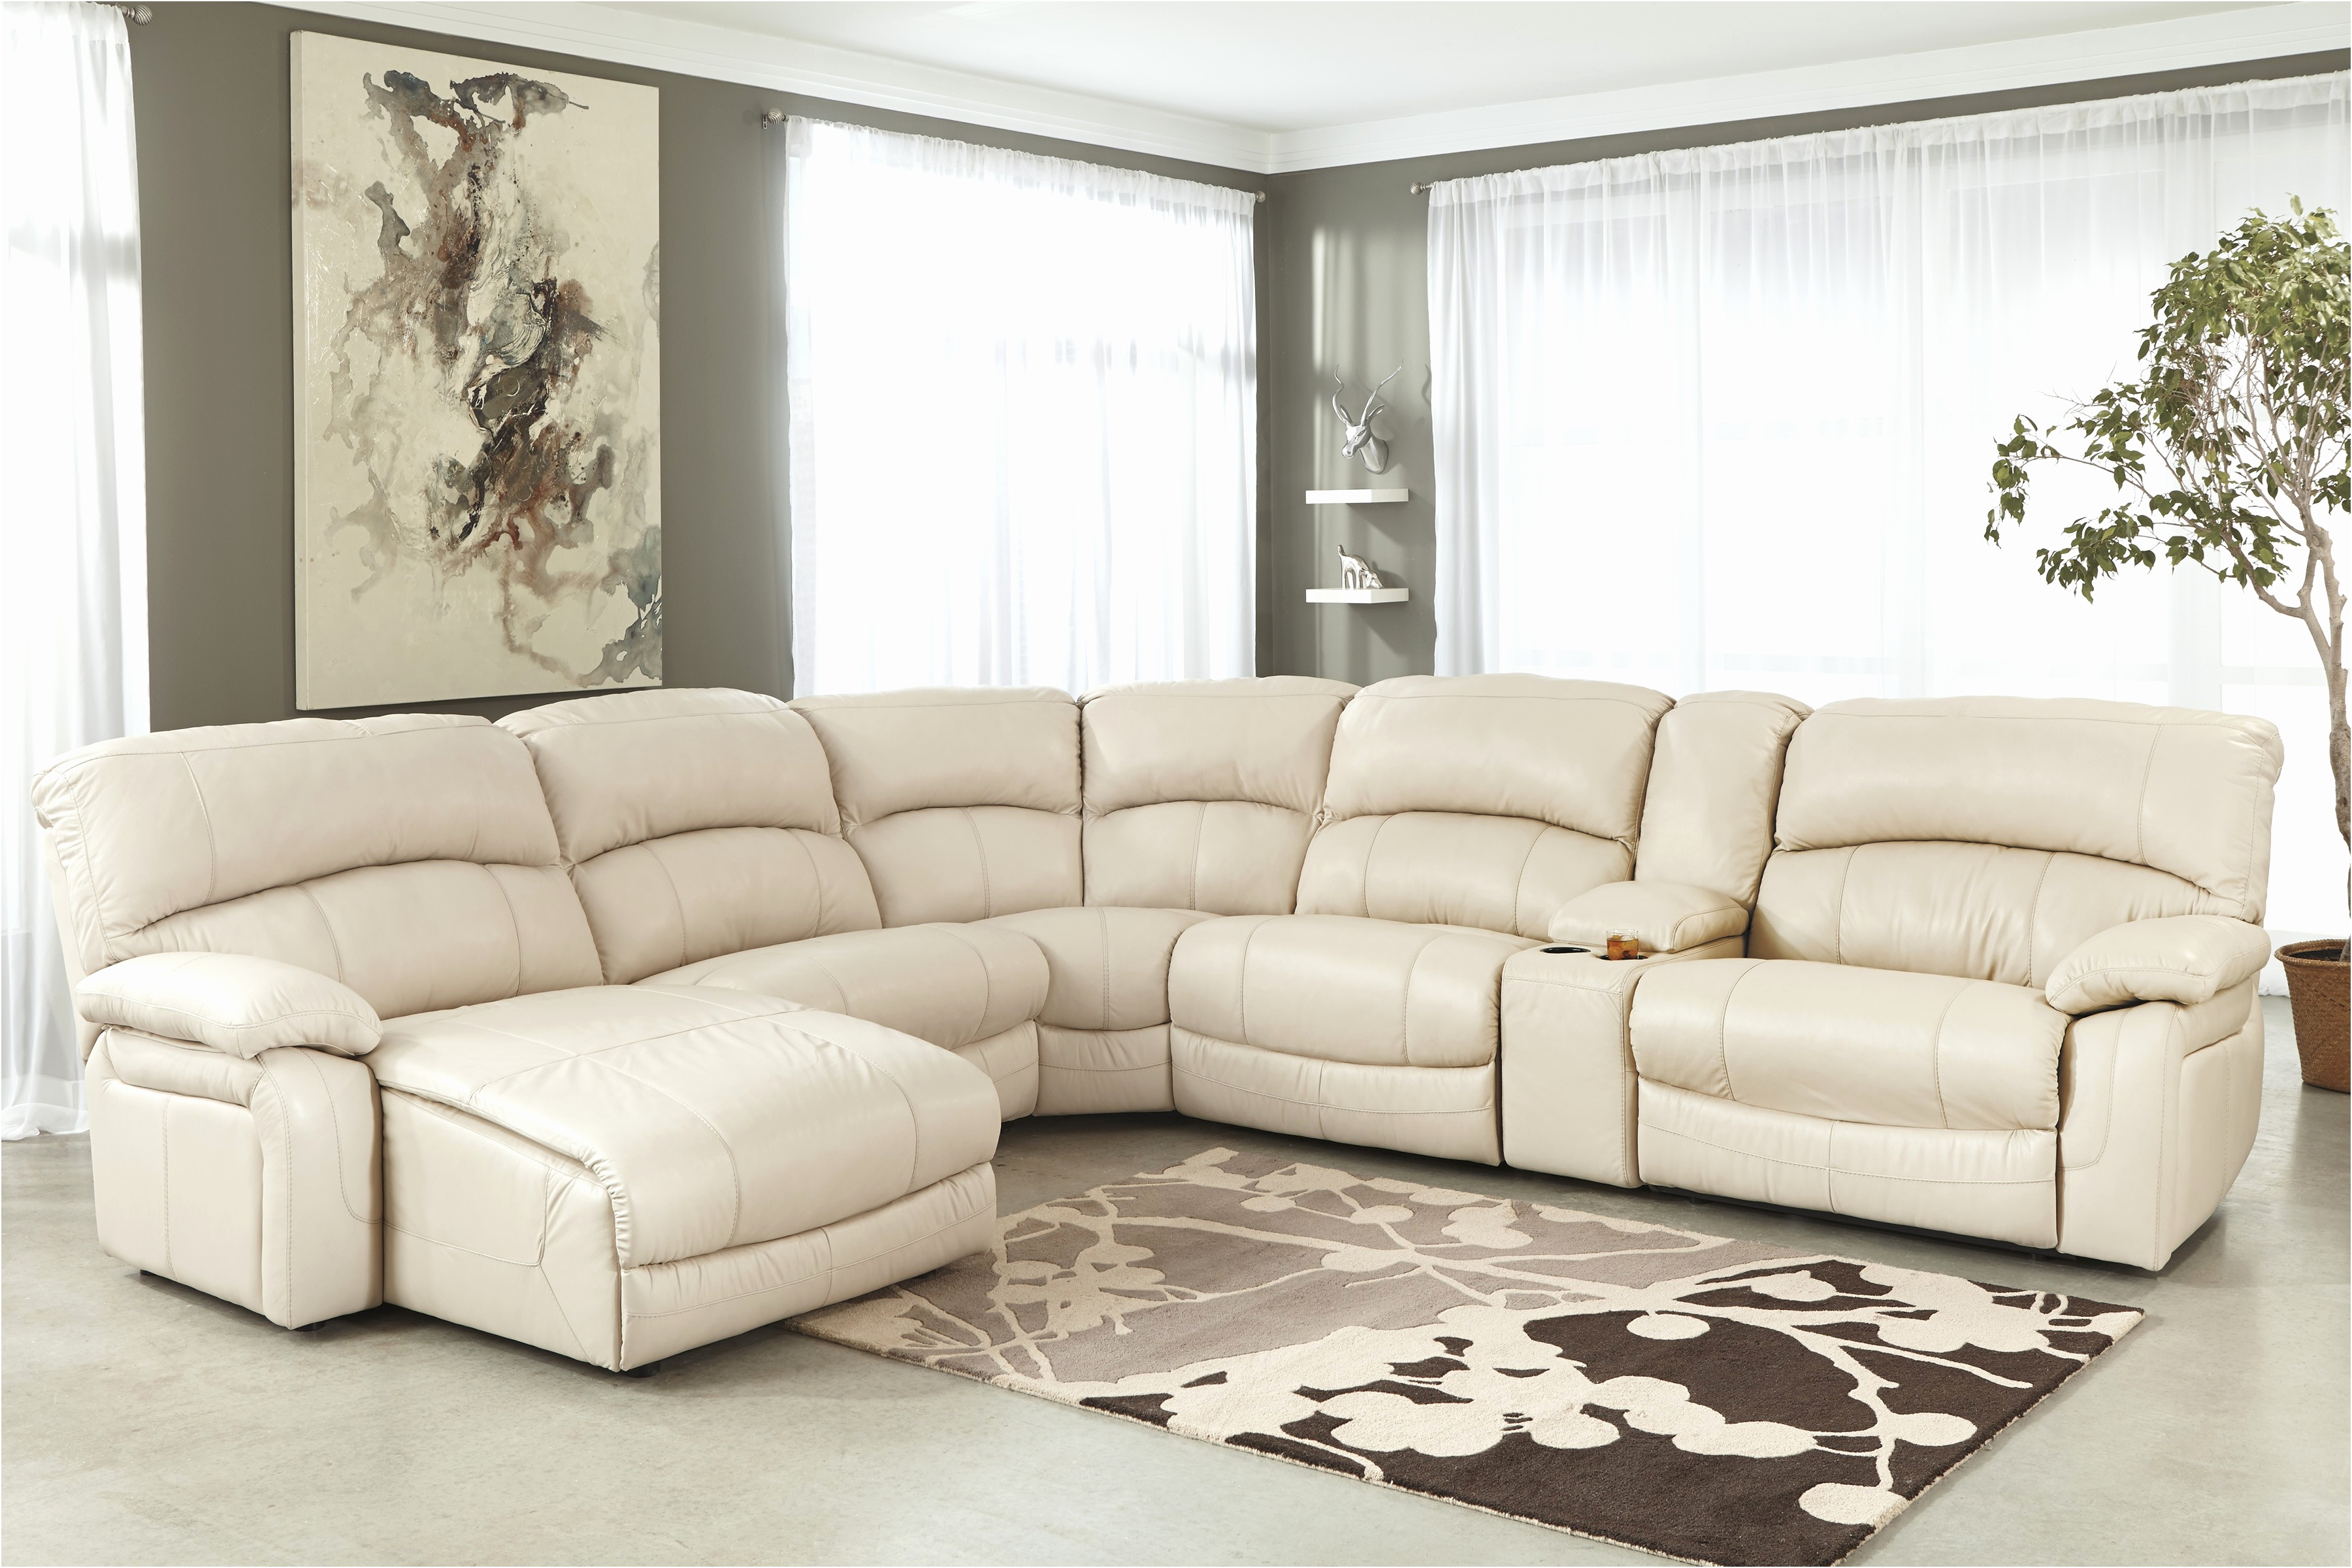 Beautiful Reclining Sectional sofas for Small Spaces ...